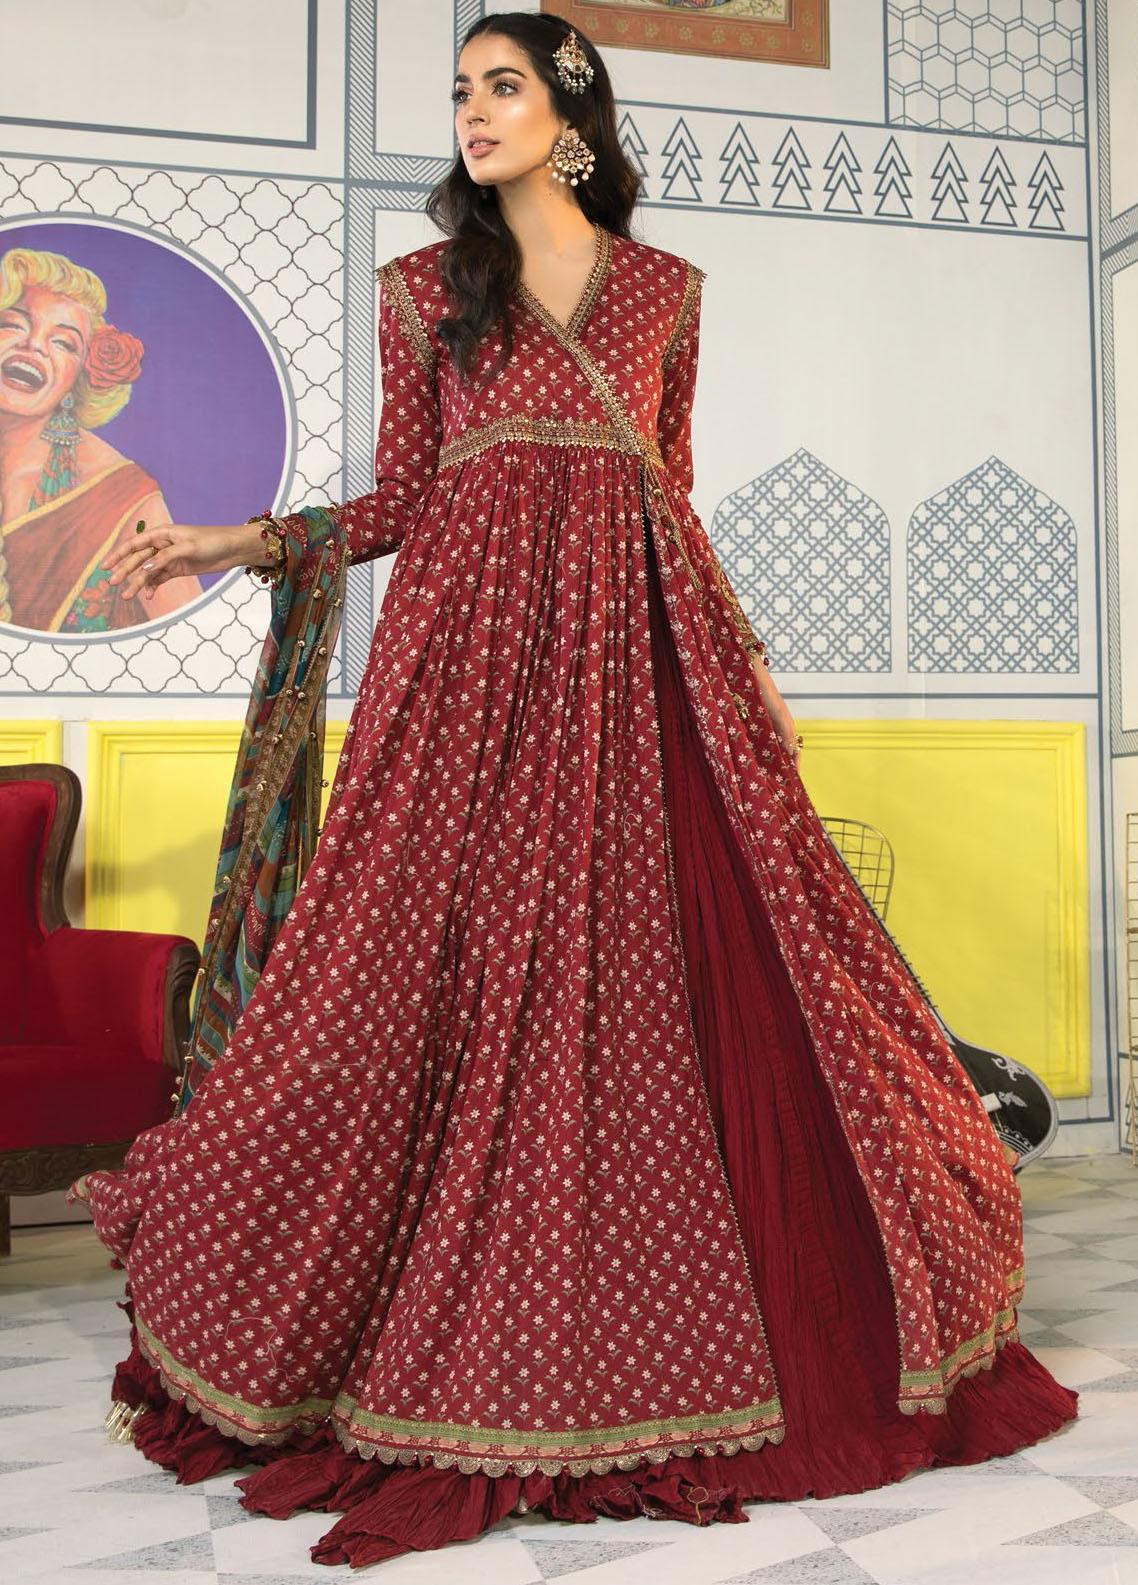 Mprints By Maria B Printed Lawn Suits Unstitched 3 Piece MB21-MP2 1109-B - Summer Collection